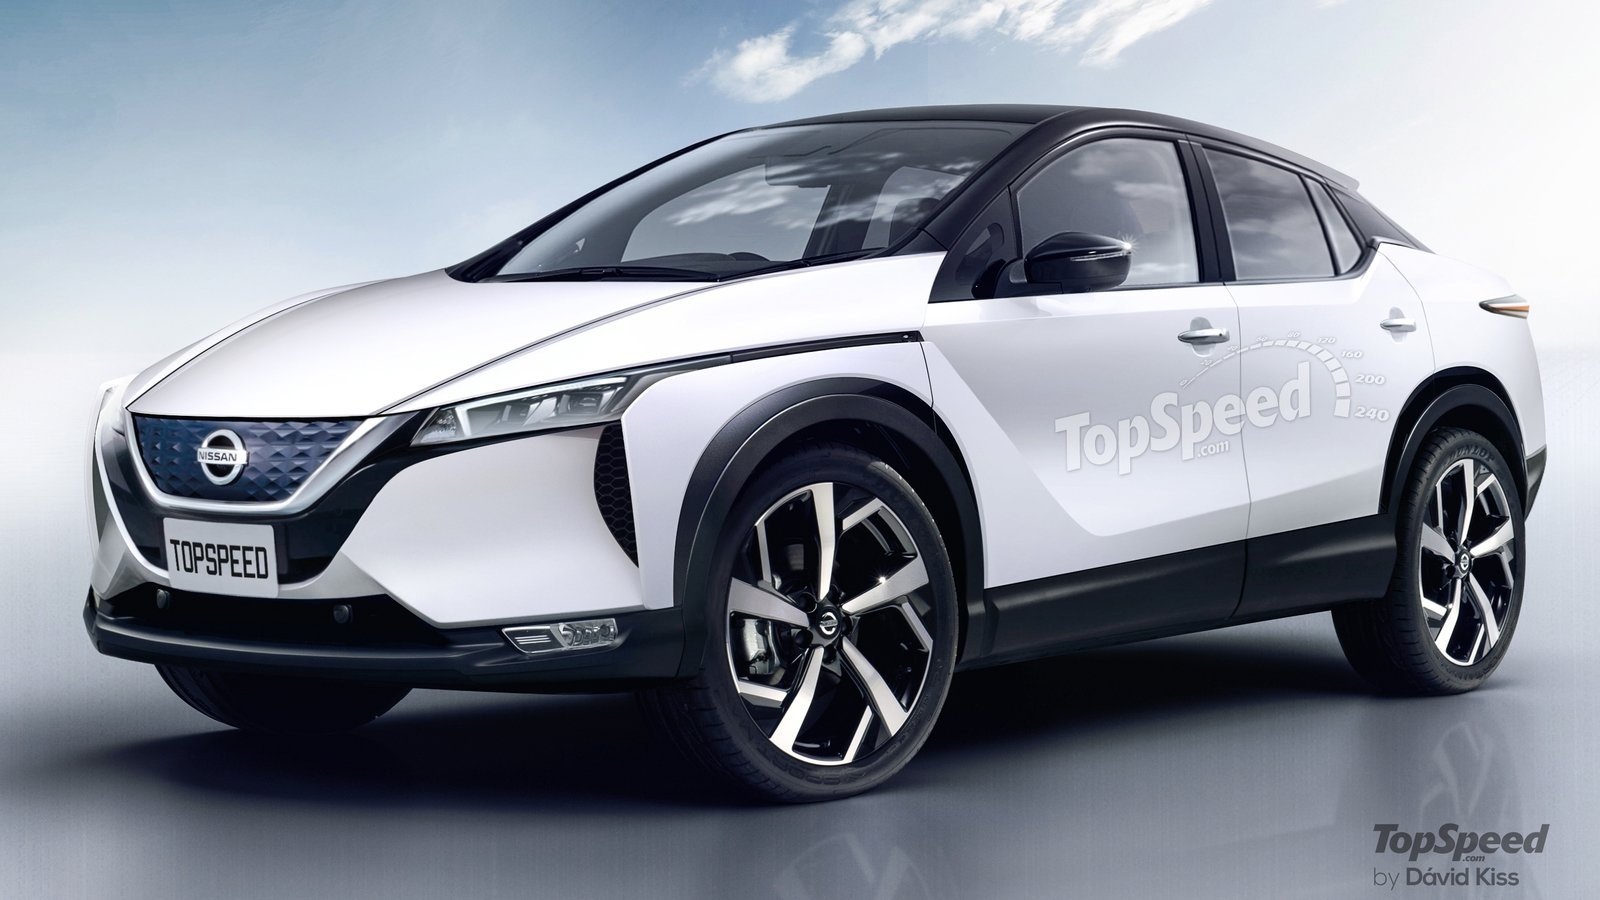 2020 Nissan Imx Top Speed